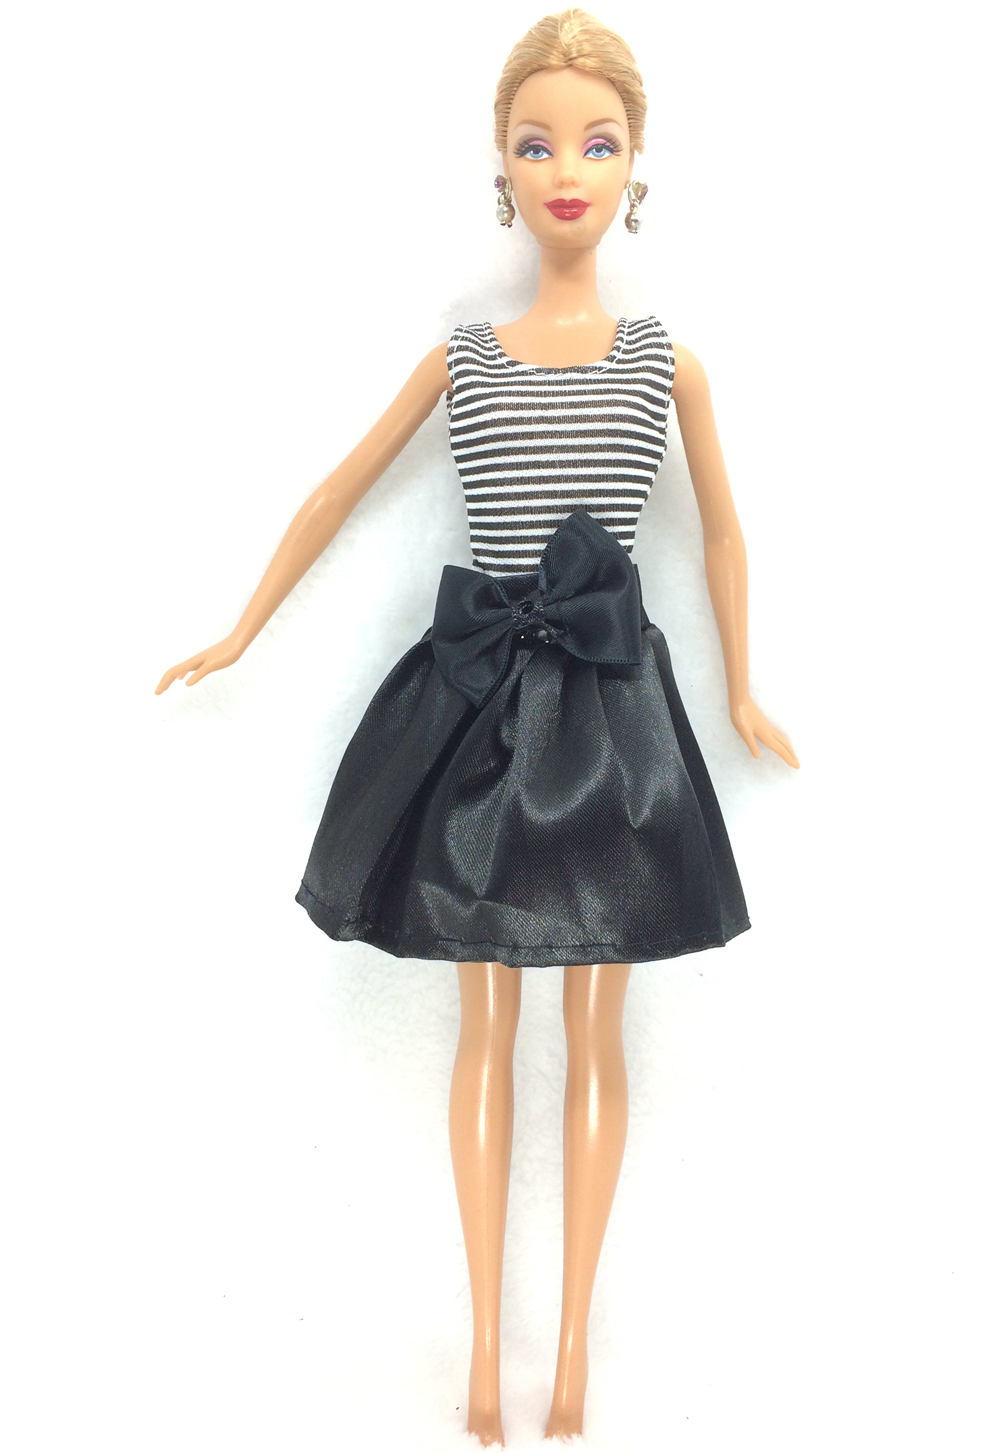 NK 2017 Newest Doll Dress Beautiful Handmade Party ClothesTop Fashion Dress For Barbie Noble Doll Best Child Girls'Gift 061B трехколесный велосипед lexus trike next pro ms 0521 голубой